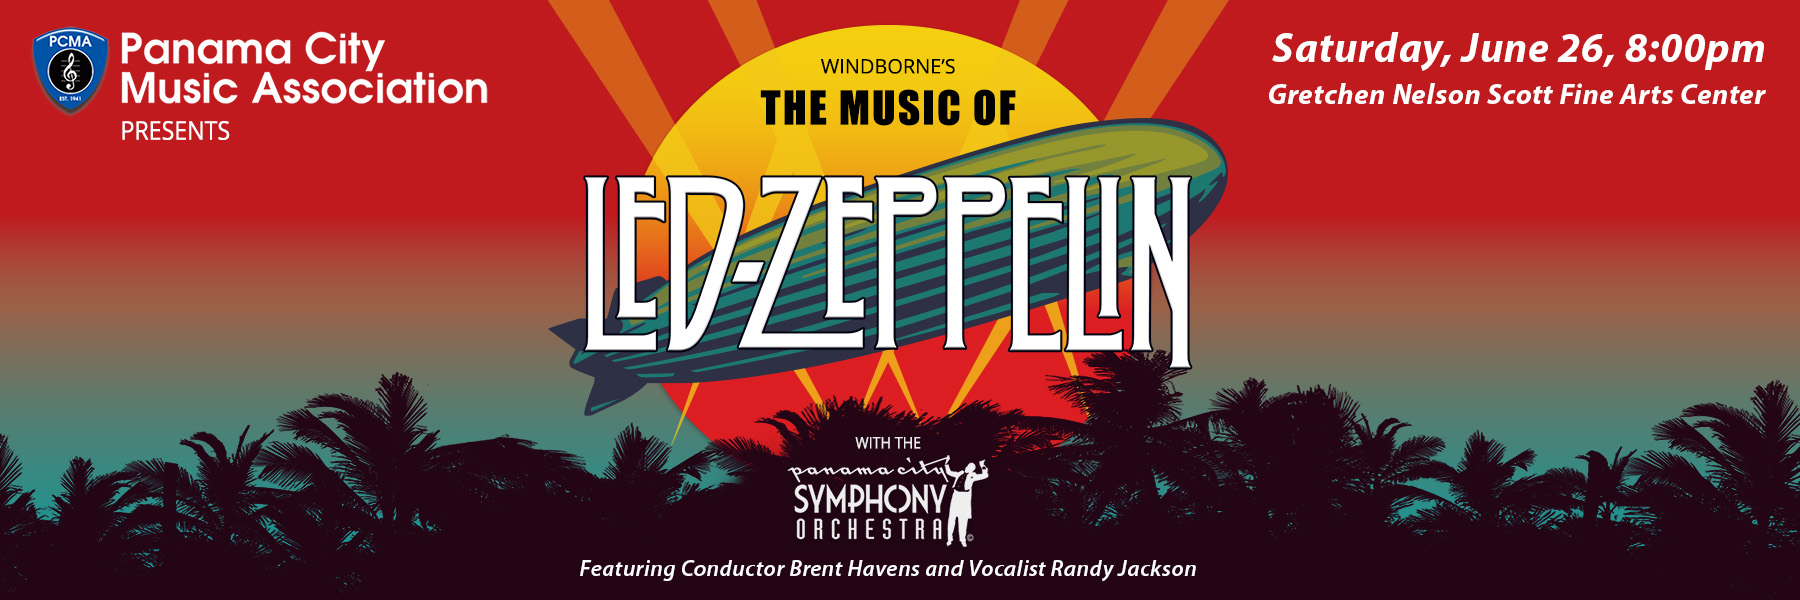 The Music of Led Zeppelin Concert